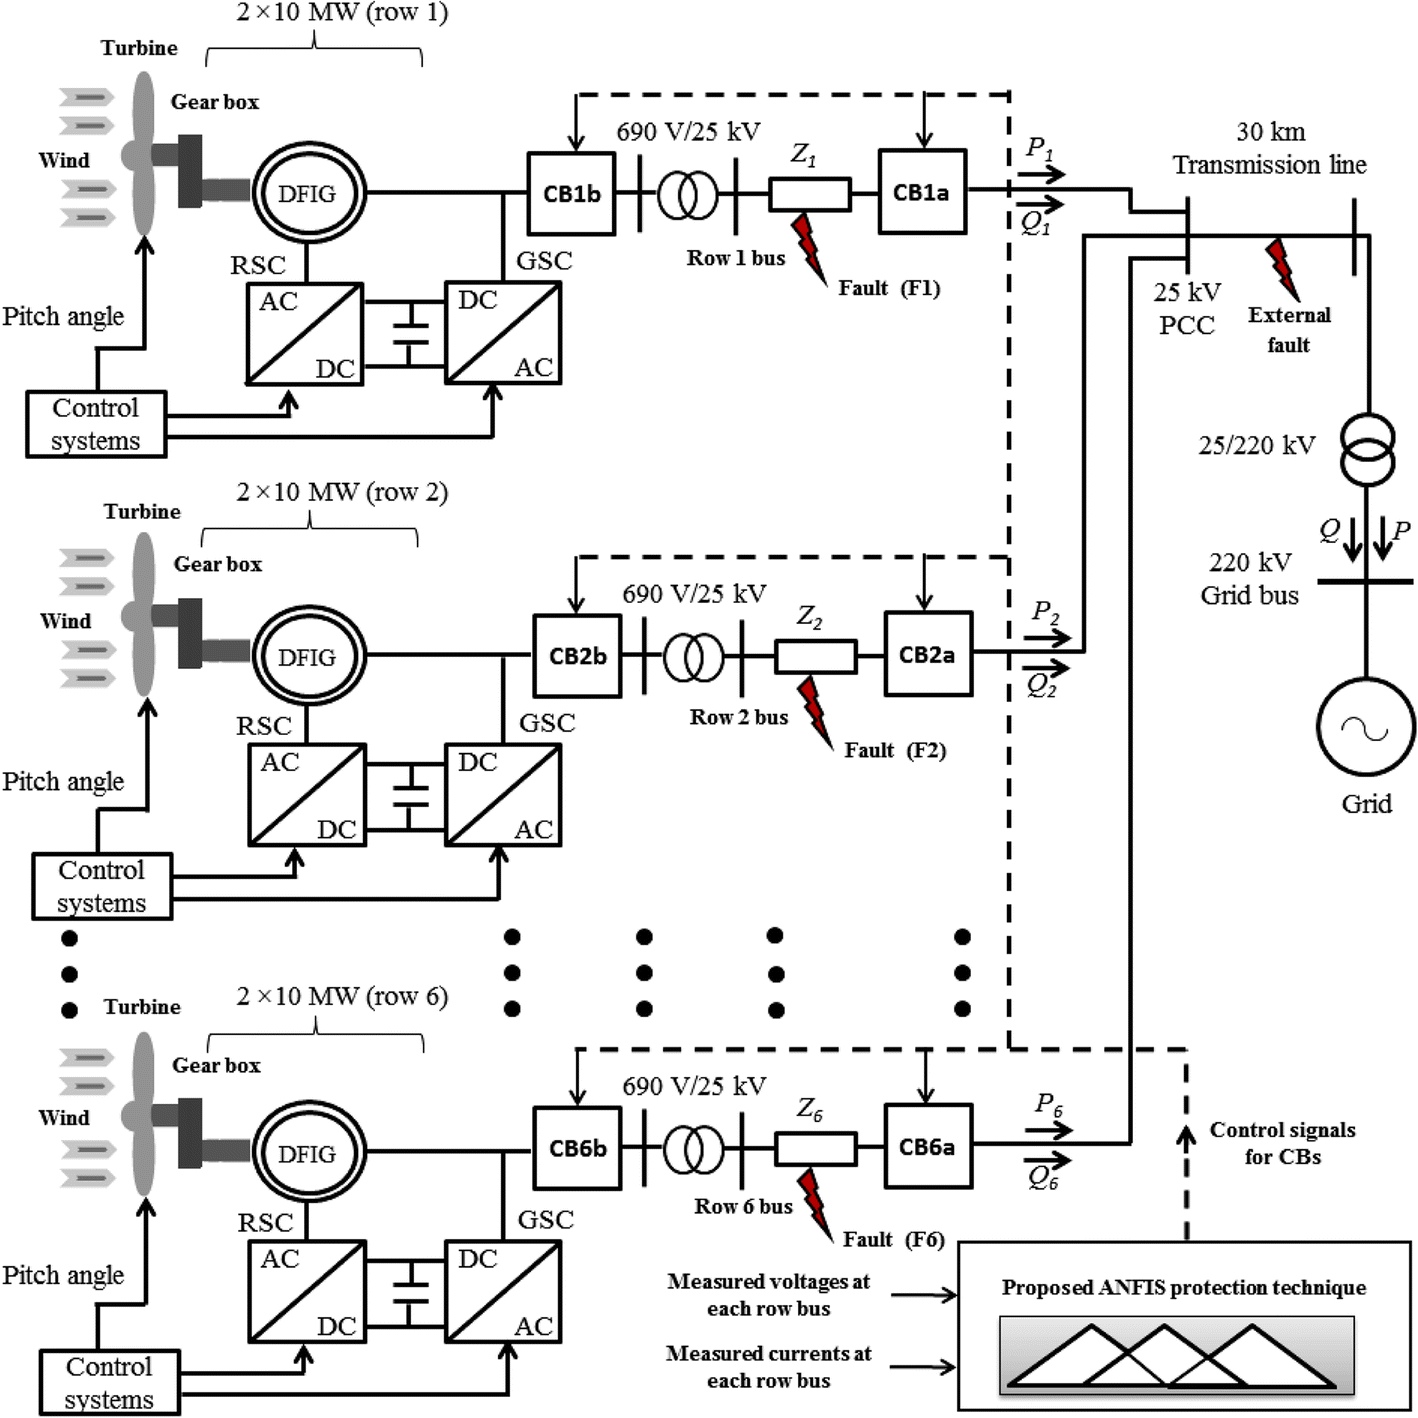 Design Of Robust Intelligent Protection Technique For Large Scale Wind Energy Turbine Diagram Furthermore Layout The Farm Open Image In New Window